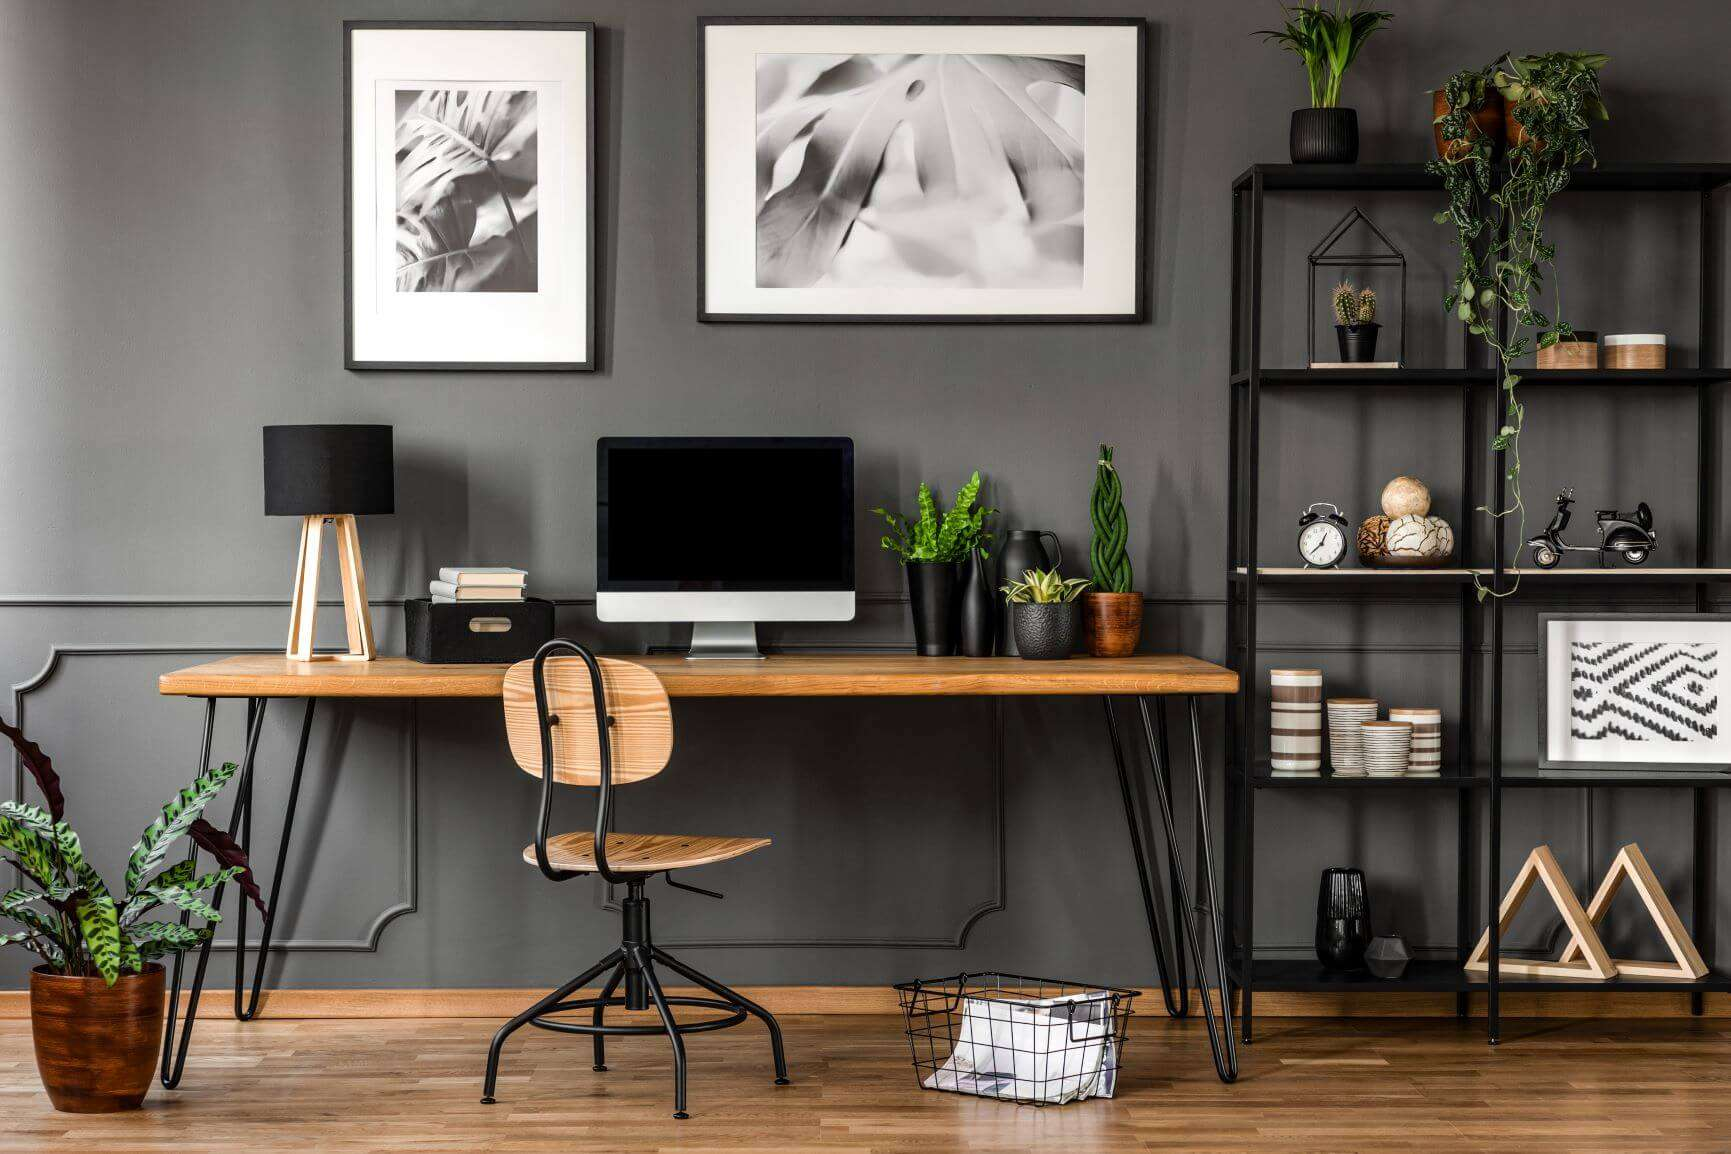 5 ways to make your home office not look too 'officey'